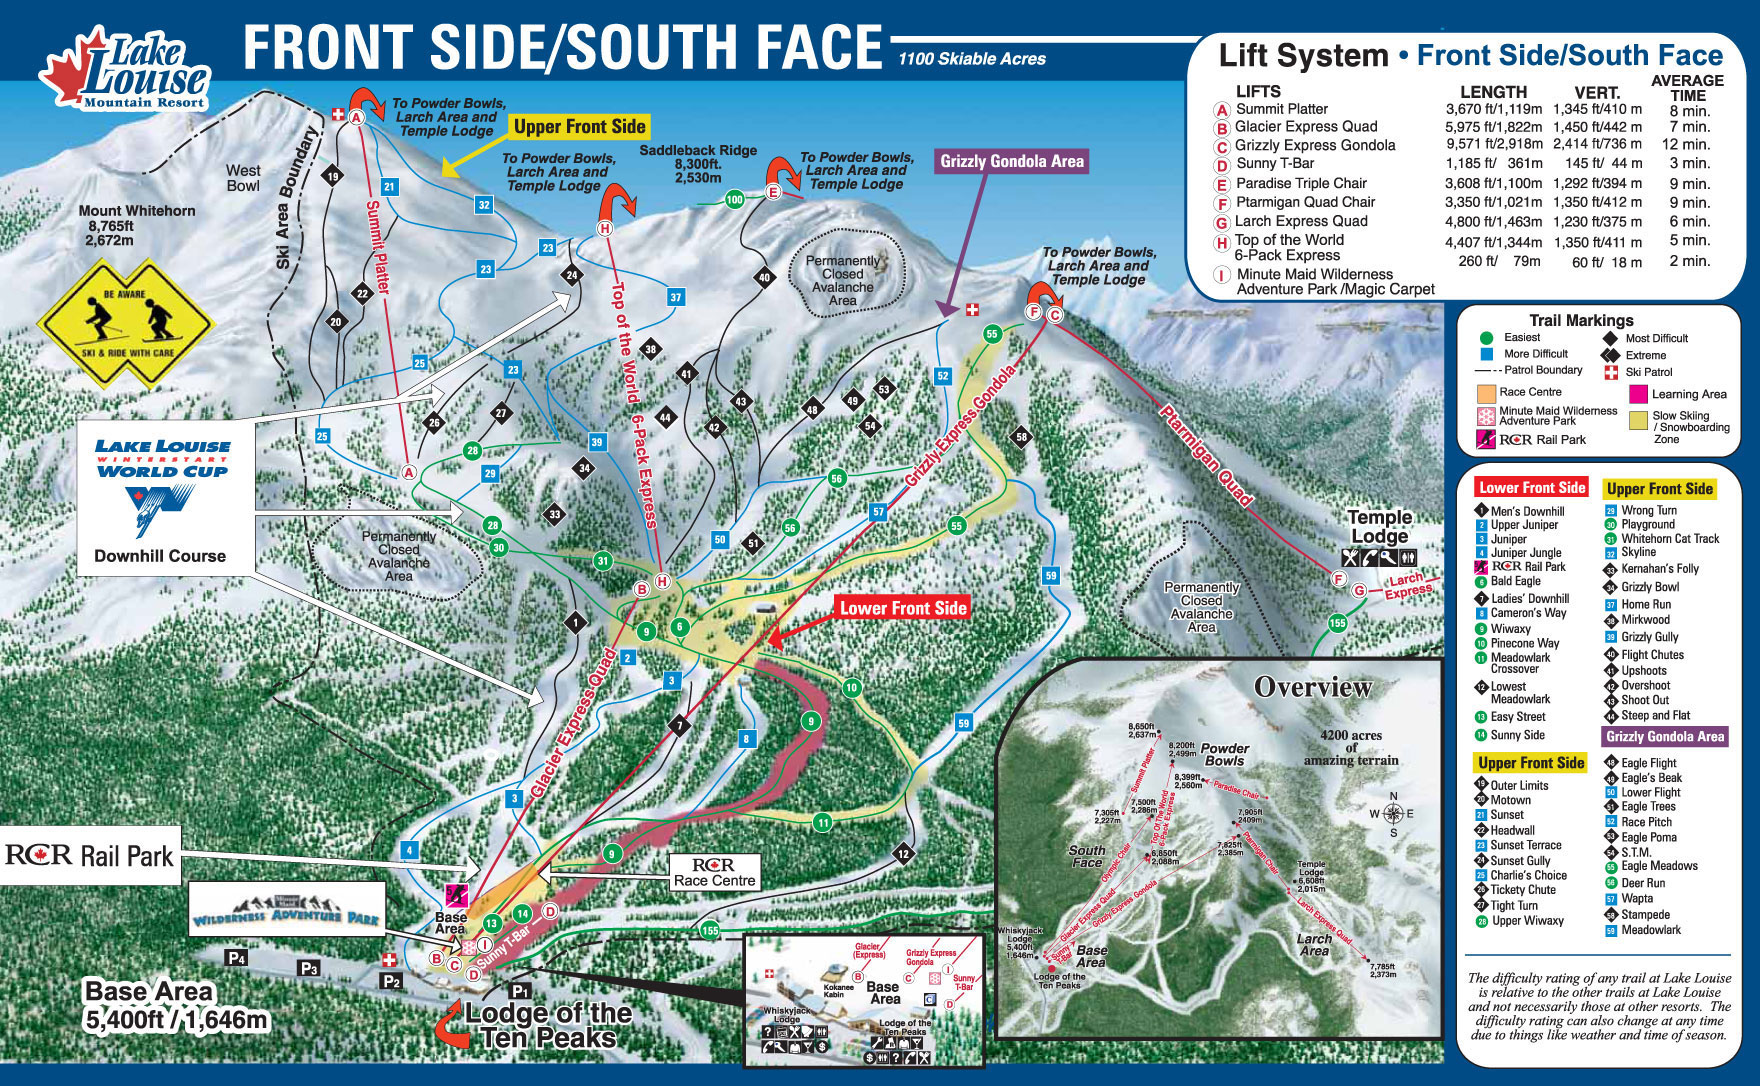 Lake Louise Piste Map - Front Side/South Face